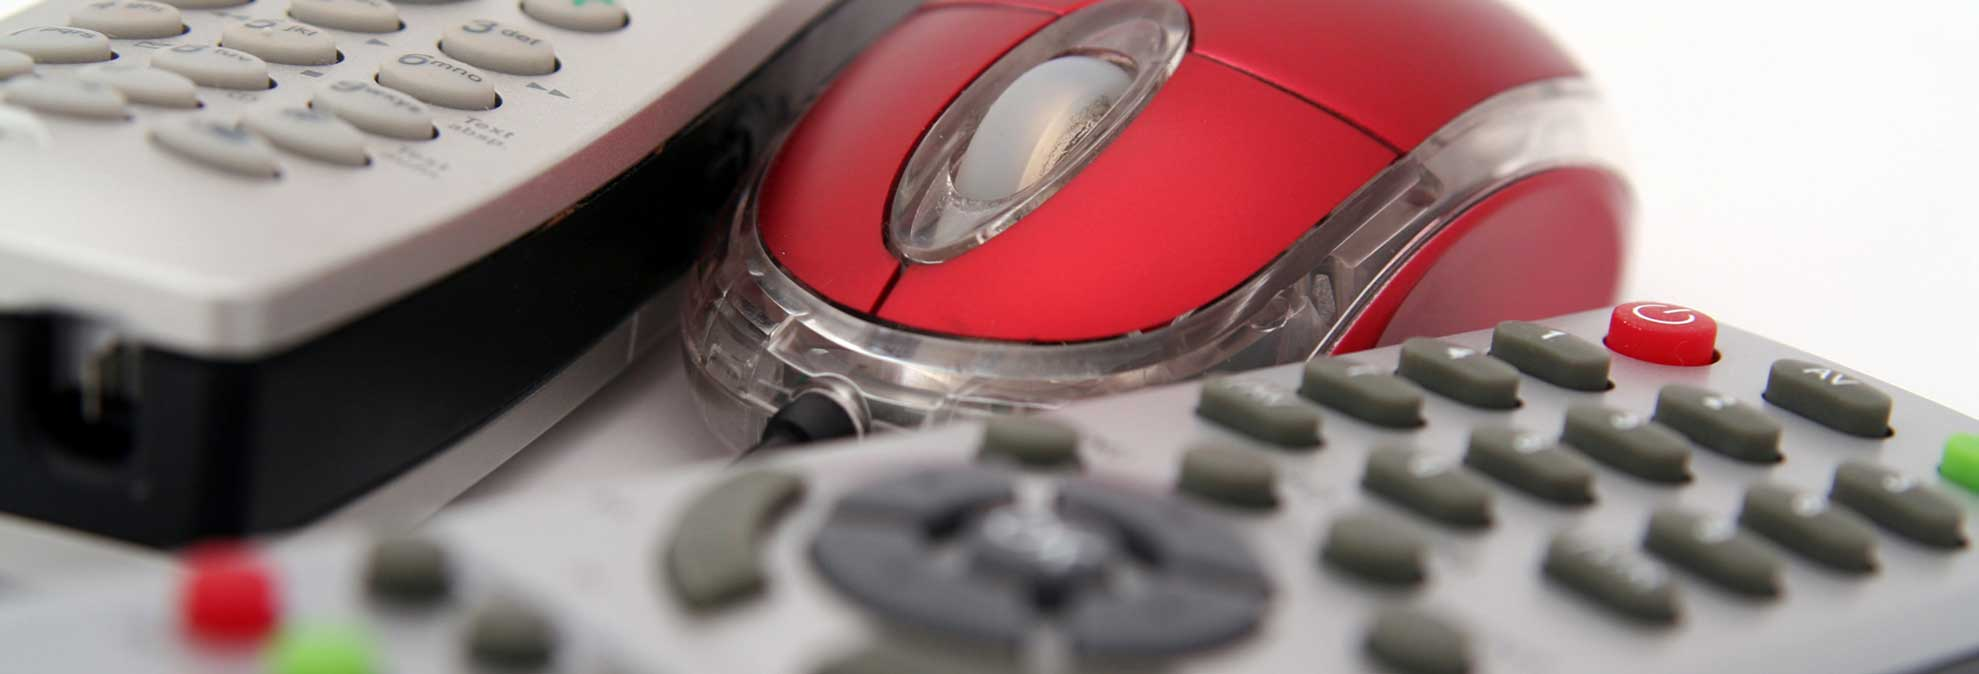 Best Telecom Service Buying Guide Consumer Reports